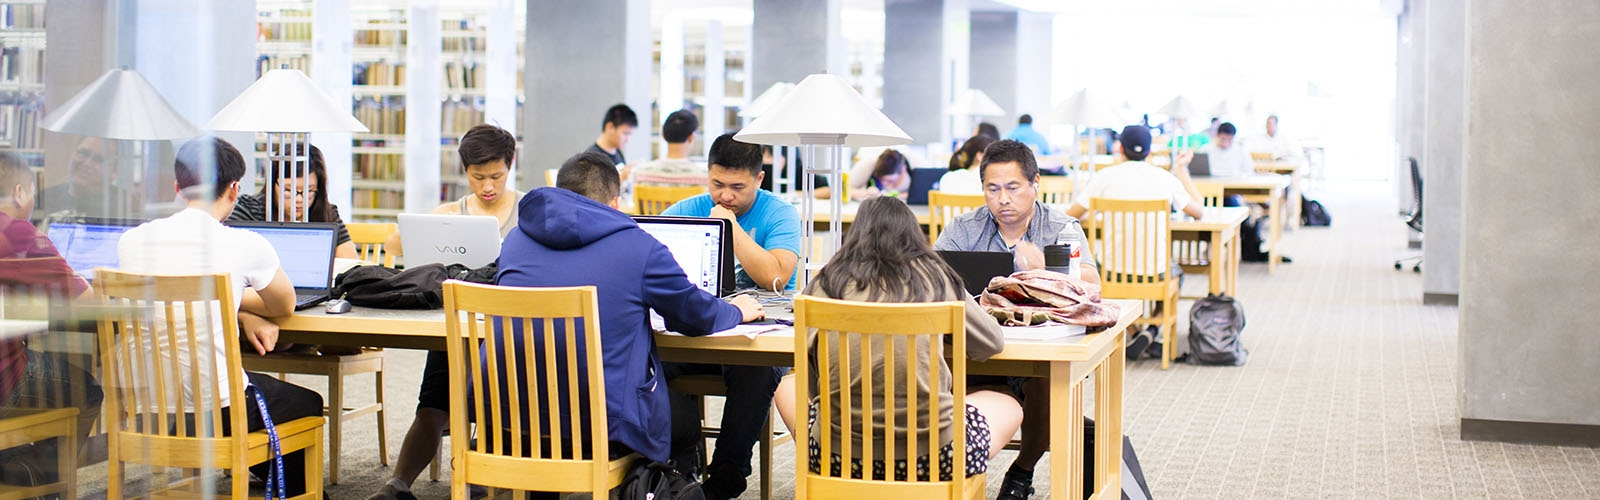 The UC Merced Library offers plenty of space to study, write or collaborate.